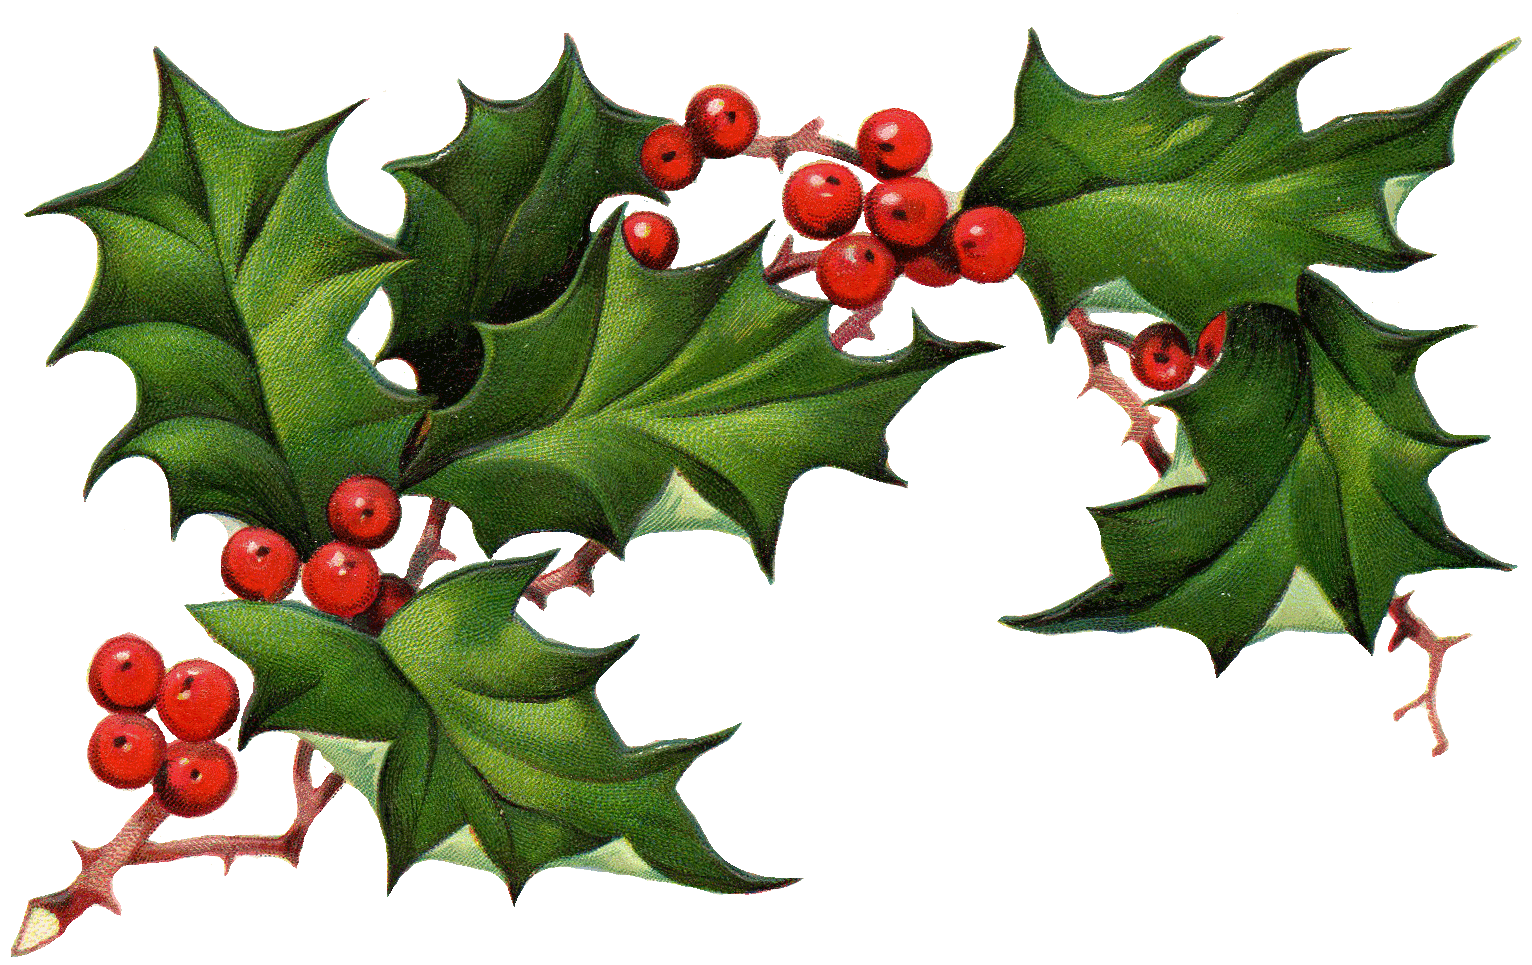 Christmas Holly Border Free Clipart Free-Christmas Holly Border Free Clipart Free Clip Art Images-12